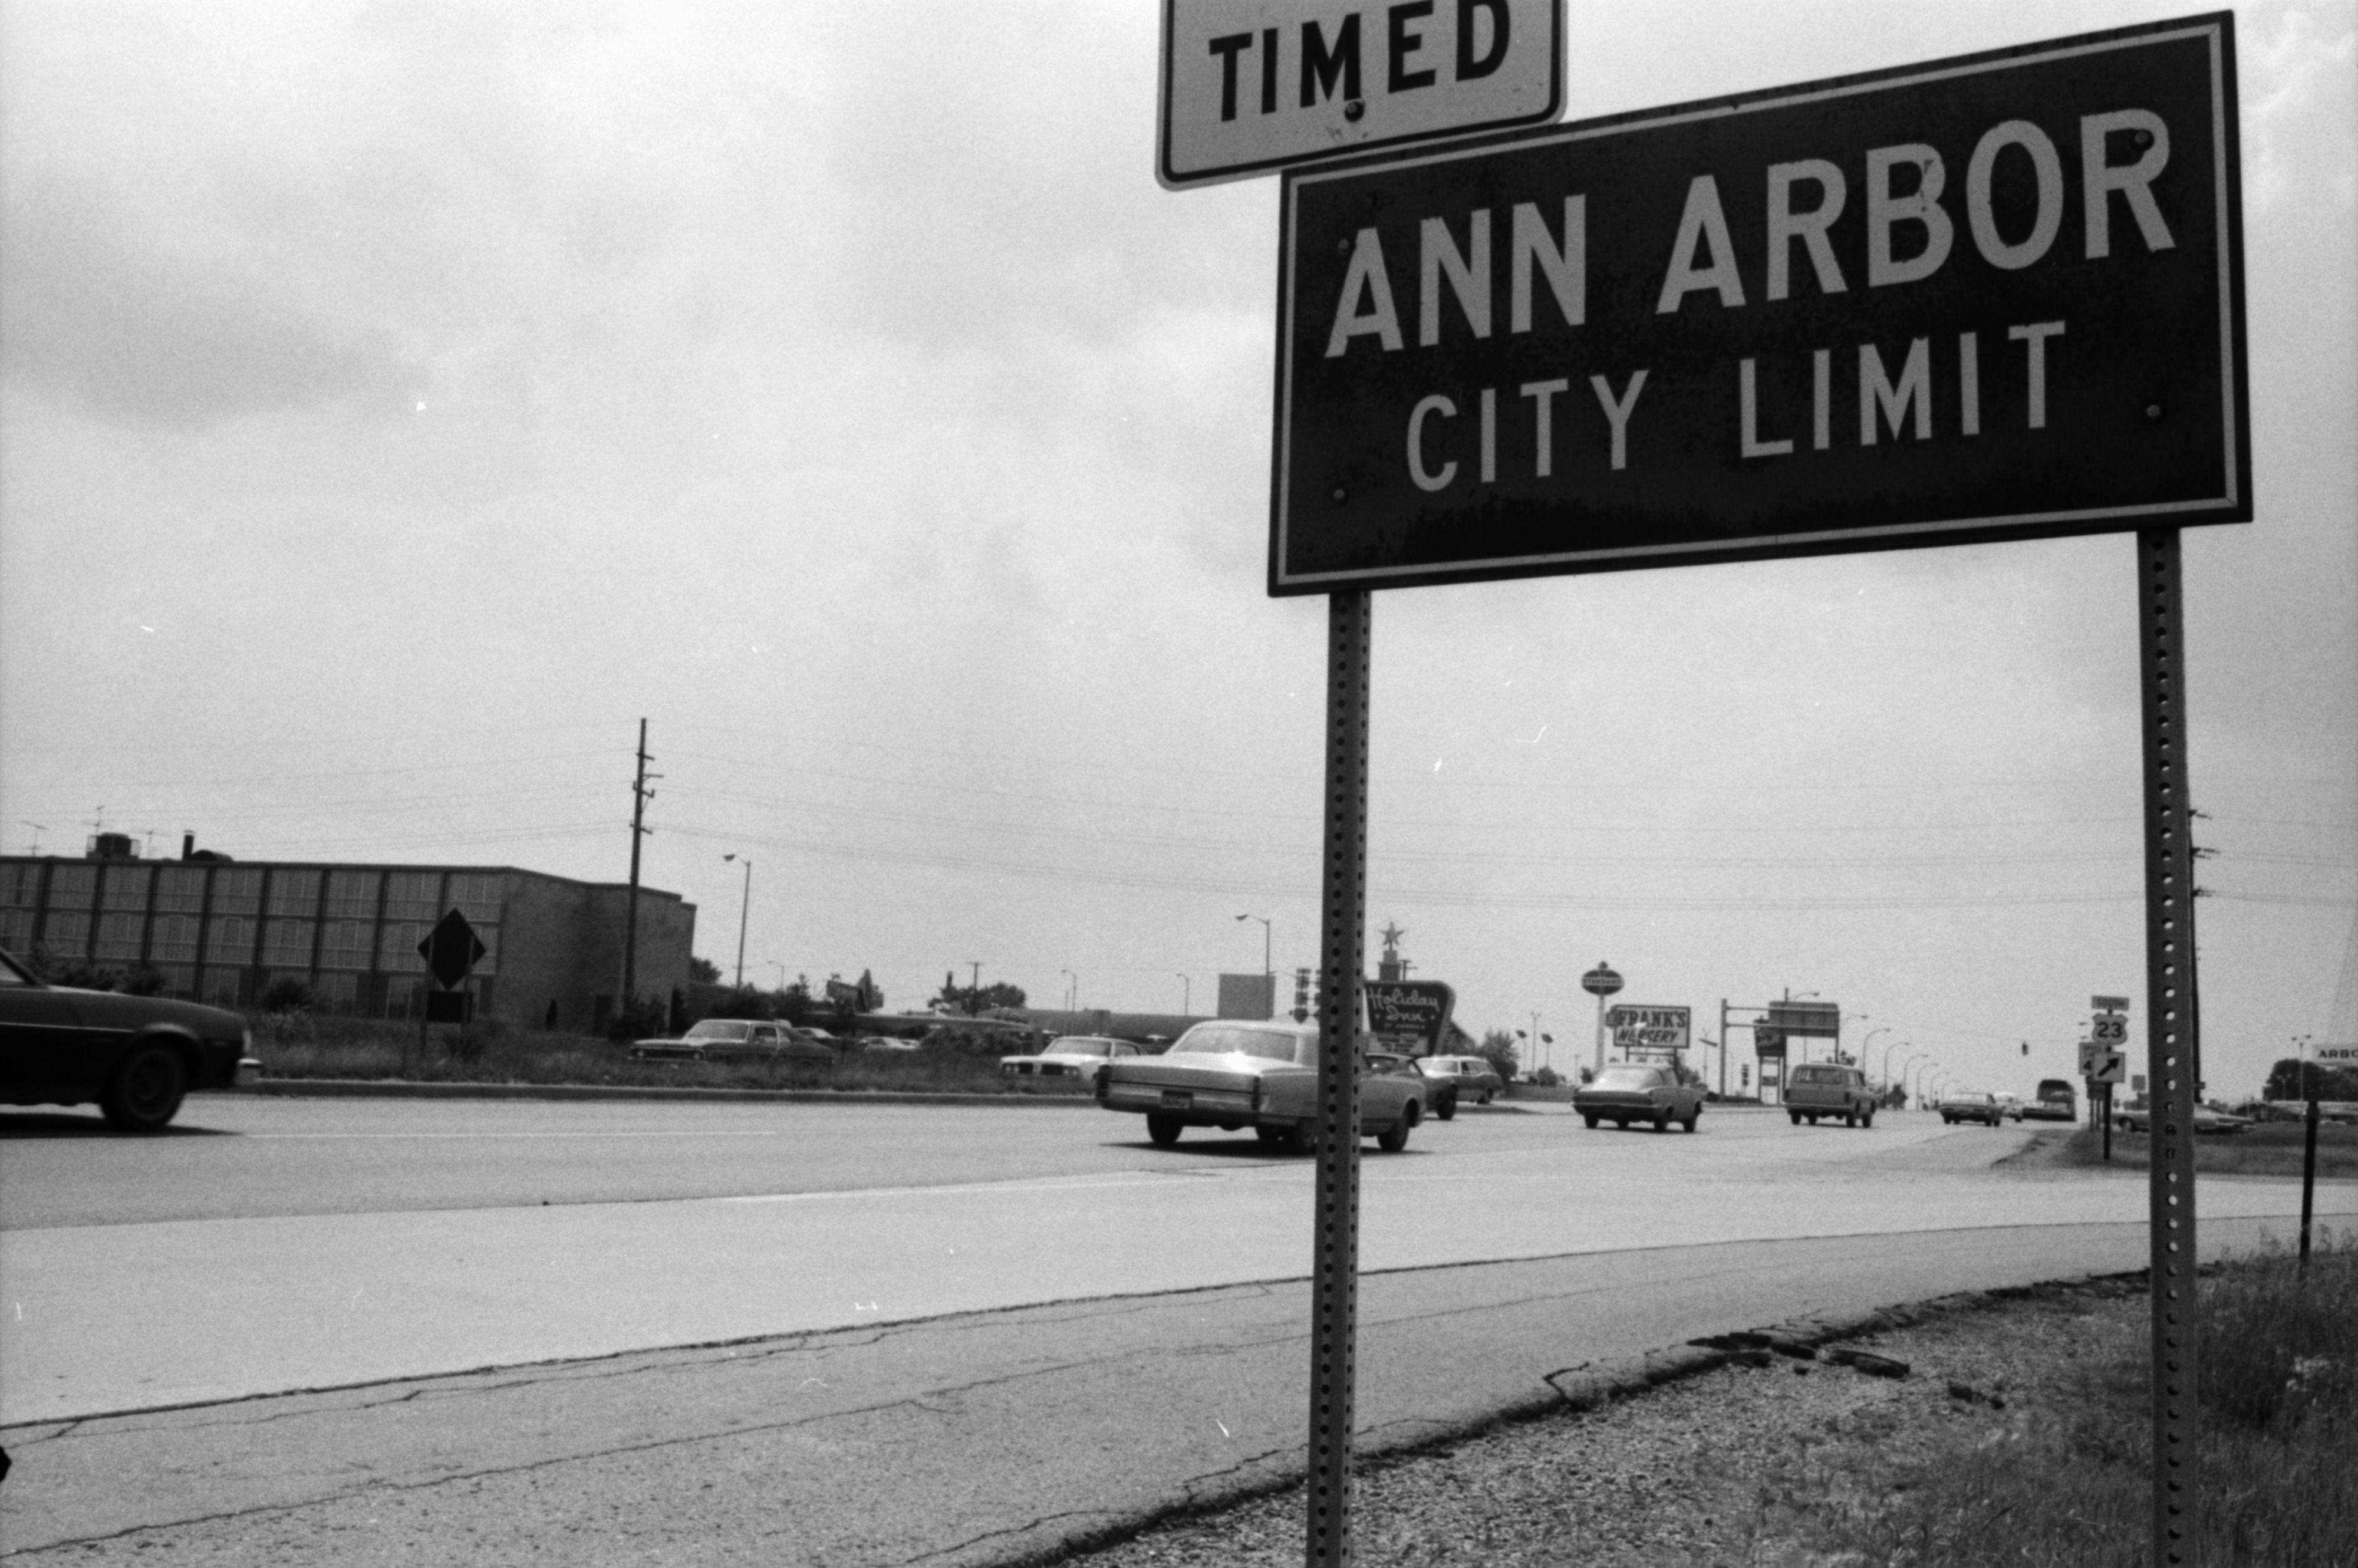 Ann Arbor City Limits Sign on Washtenaw Ave, June 1974 image